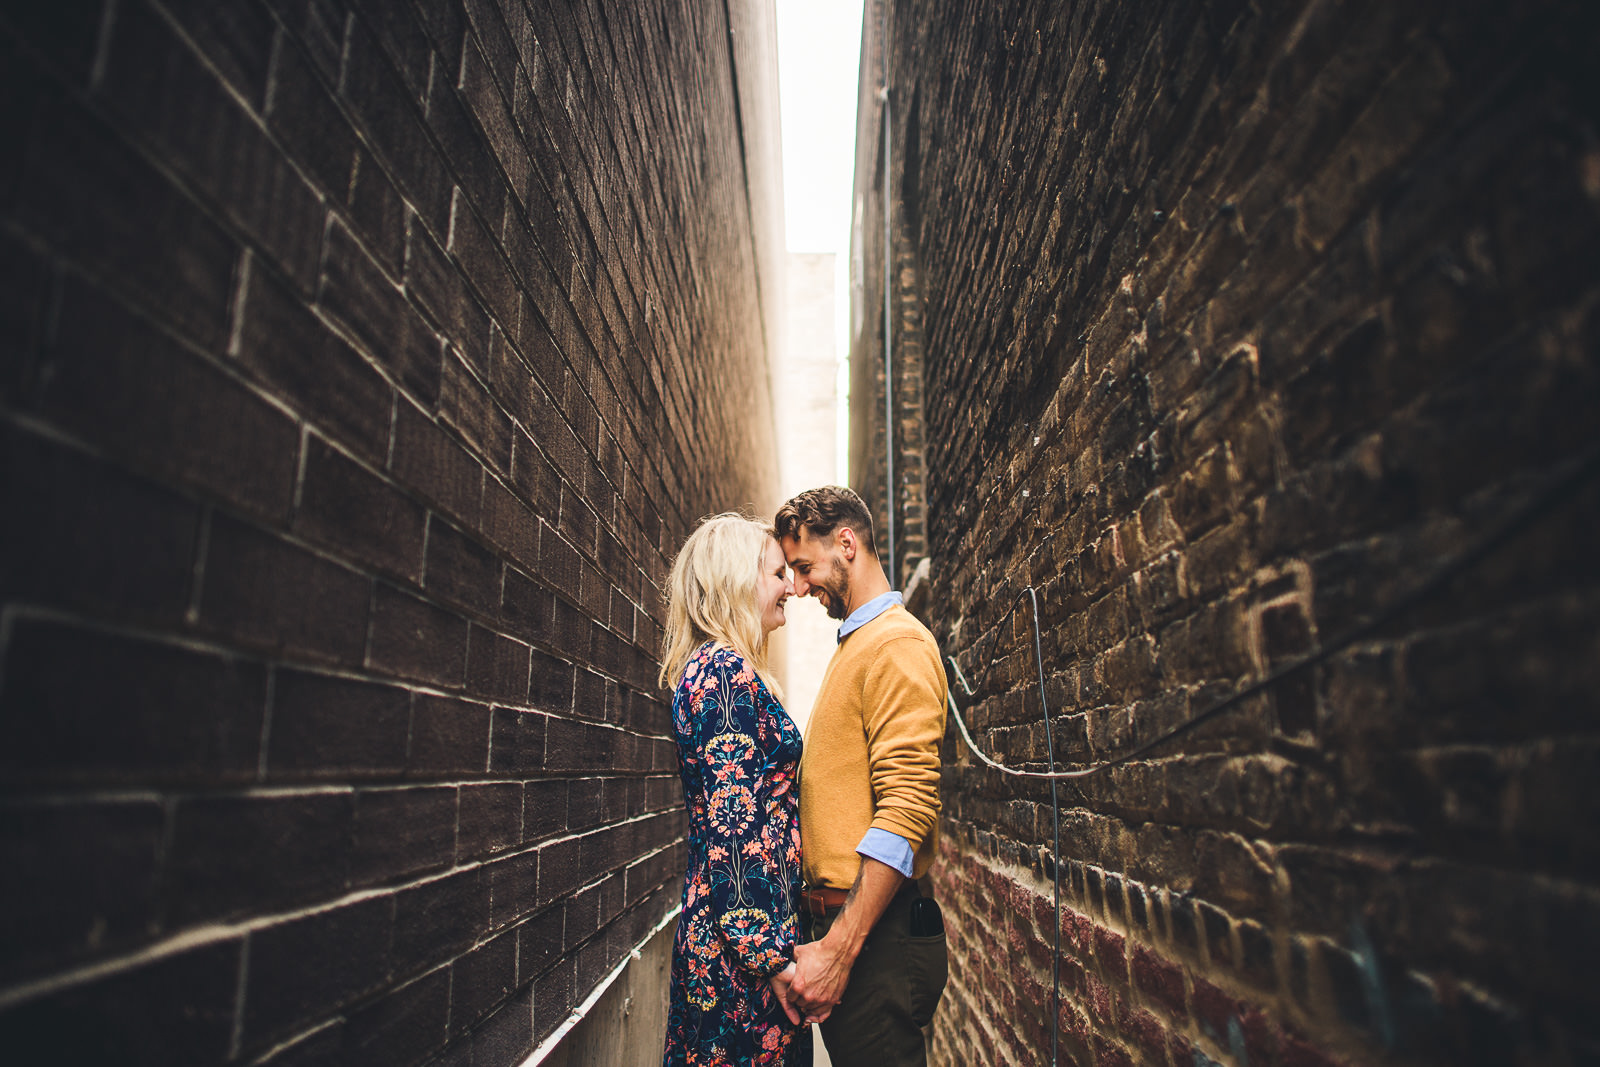 07 wes anderson inspired engagement session - Wes Anderson Inspired Engagement Session in Wicker Park // Kelsey + Mark